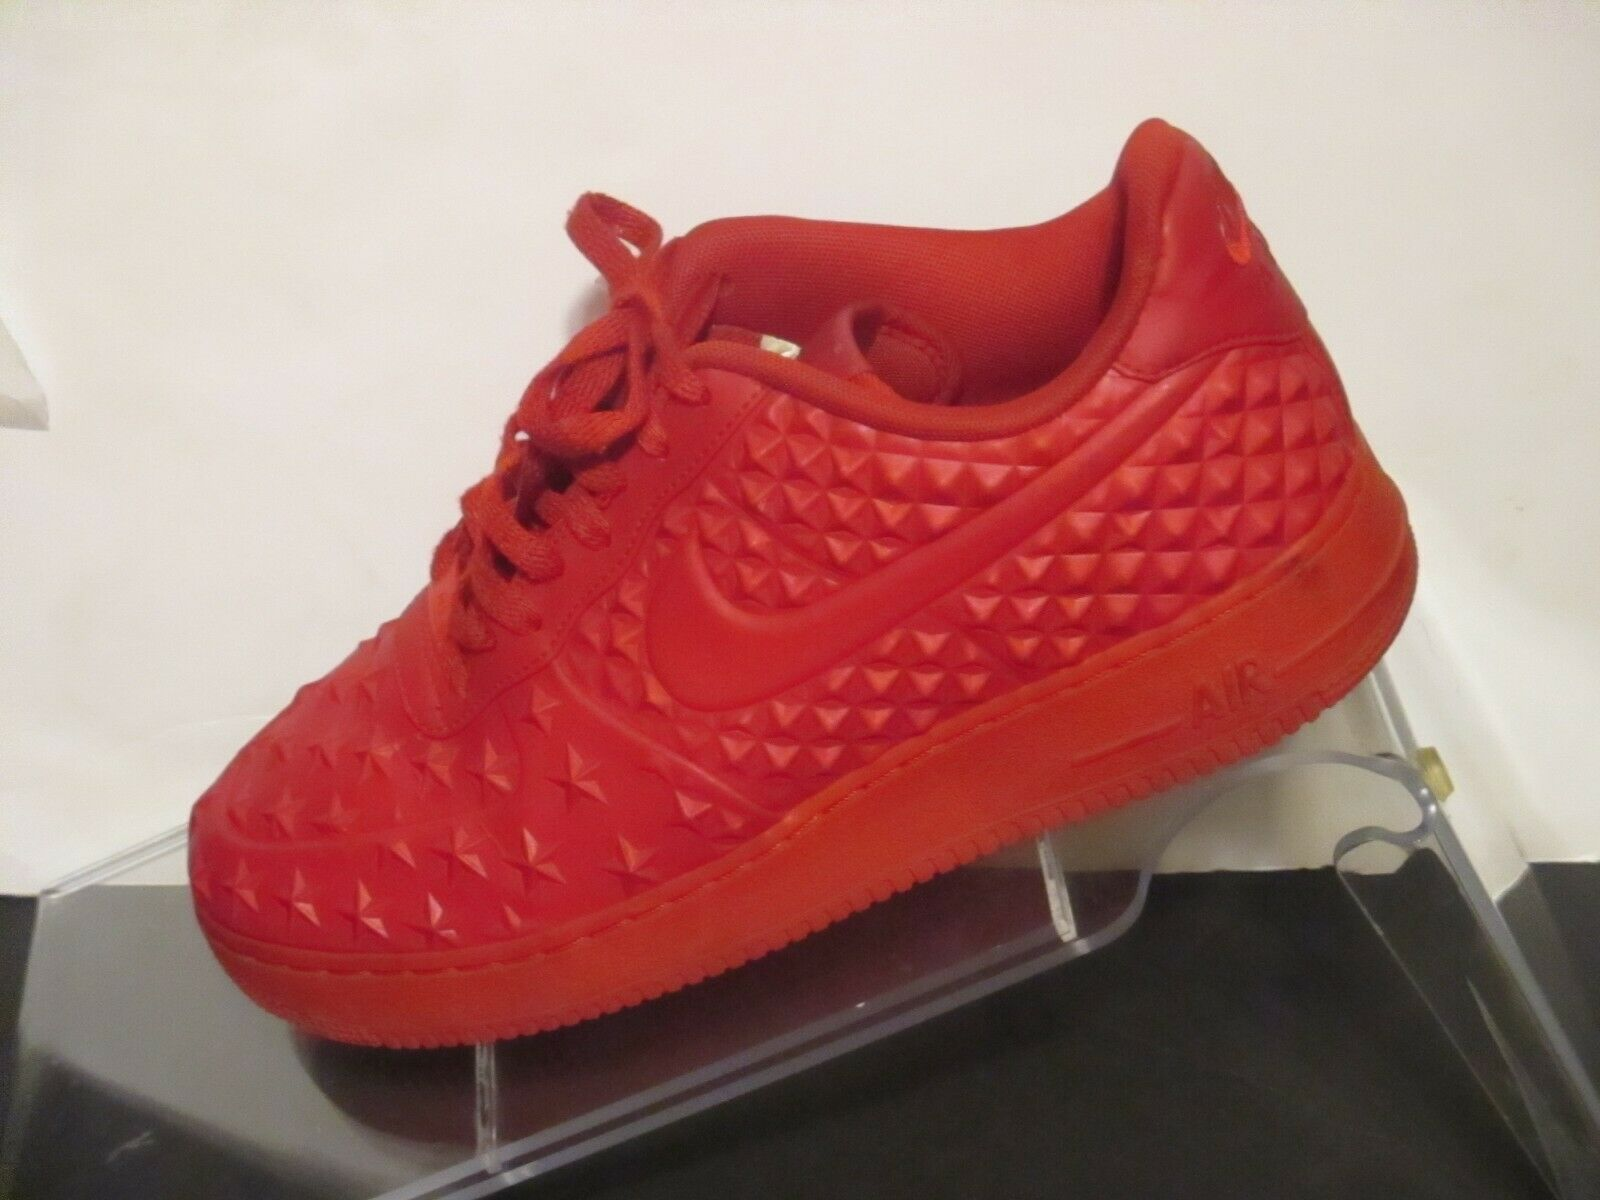 NIKE AIR FORCE 1 LV8 VT Independence Day Red 789104 600 Sneakers Sz 12 j133